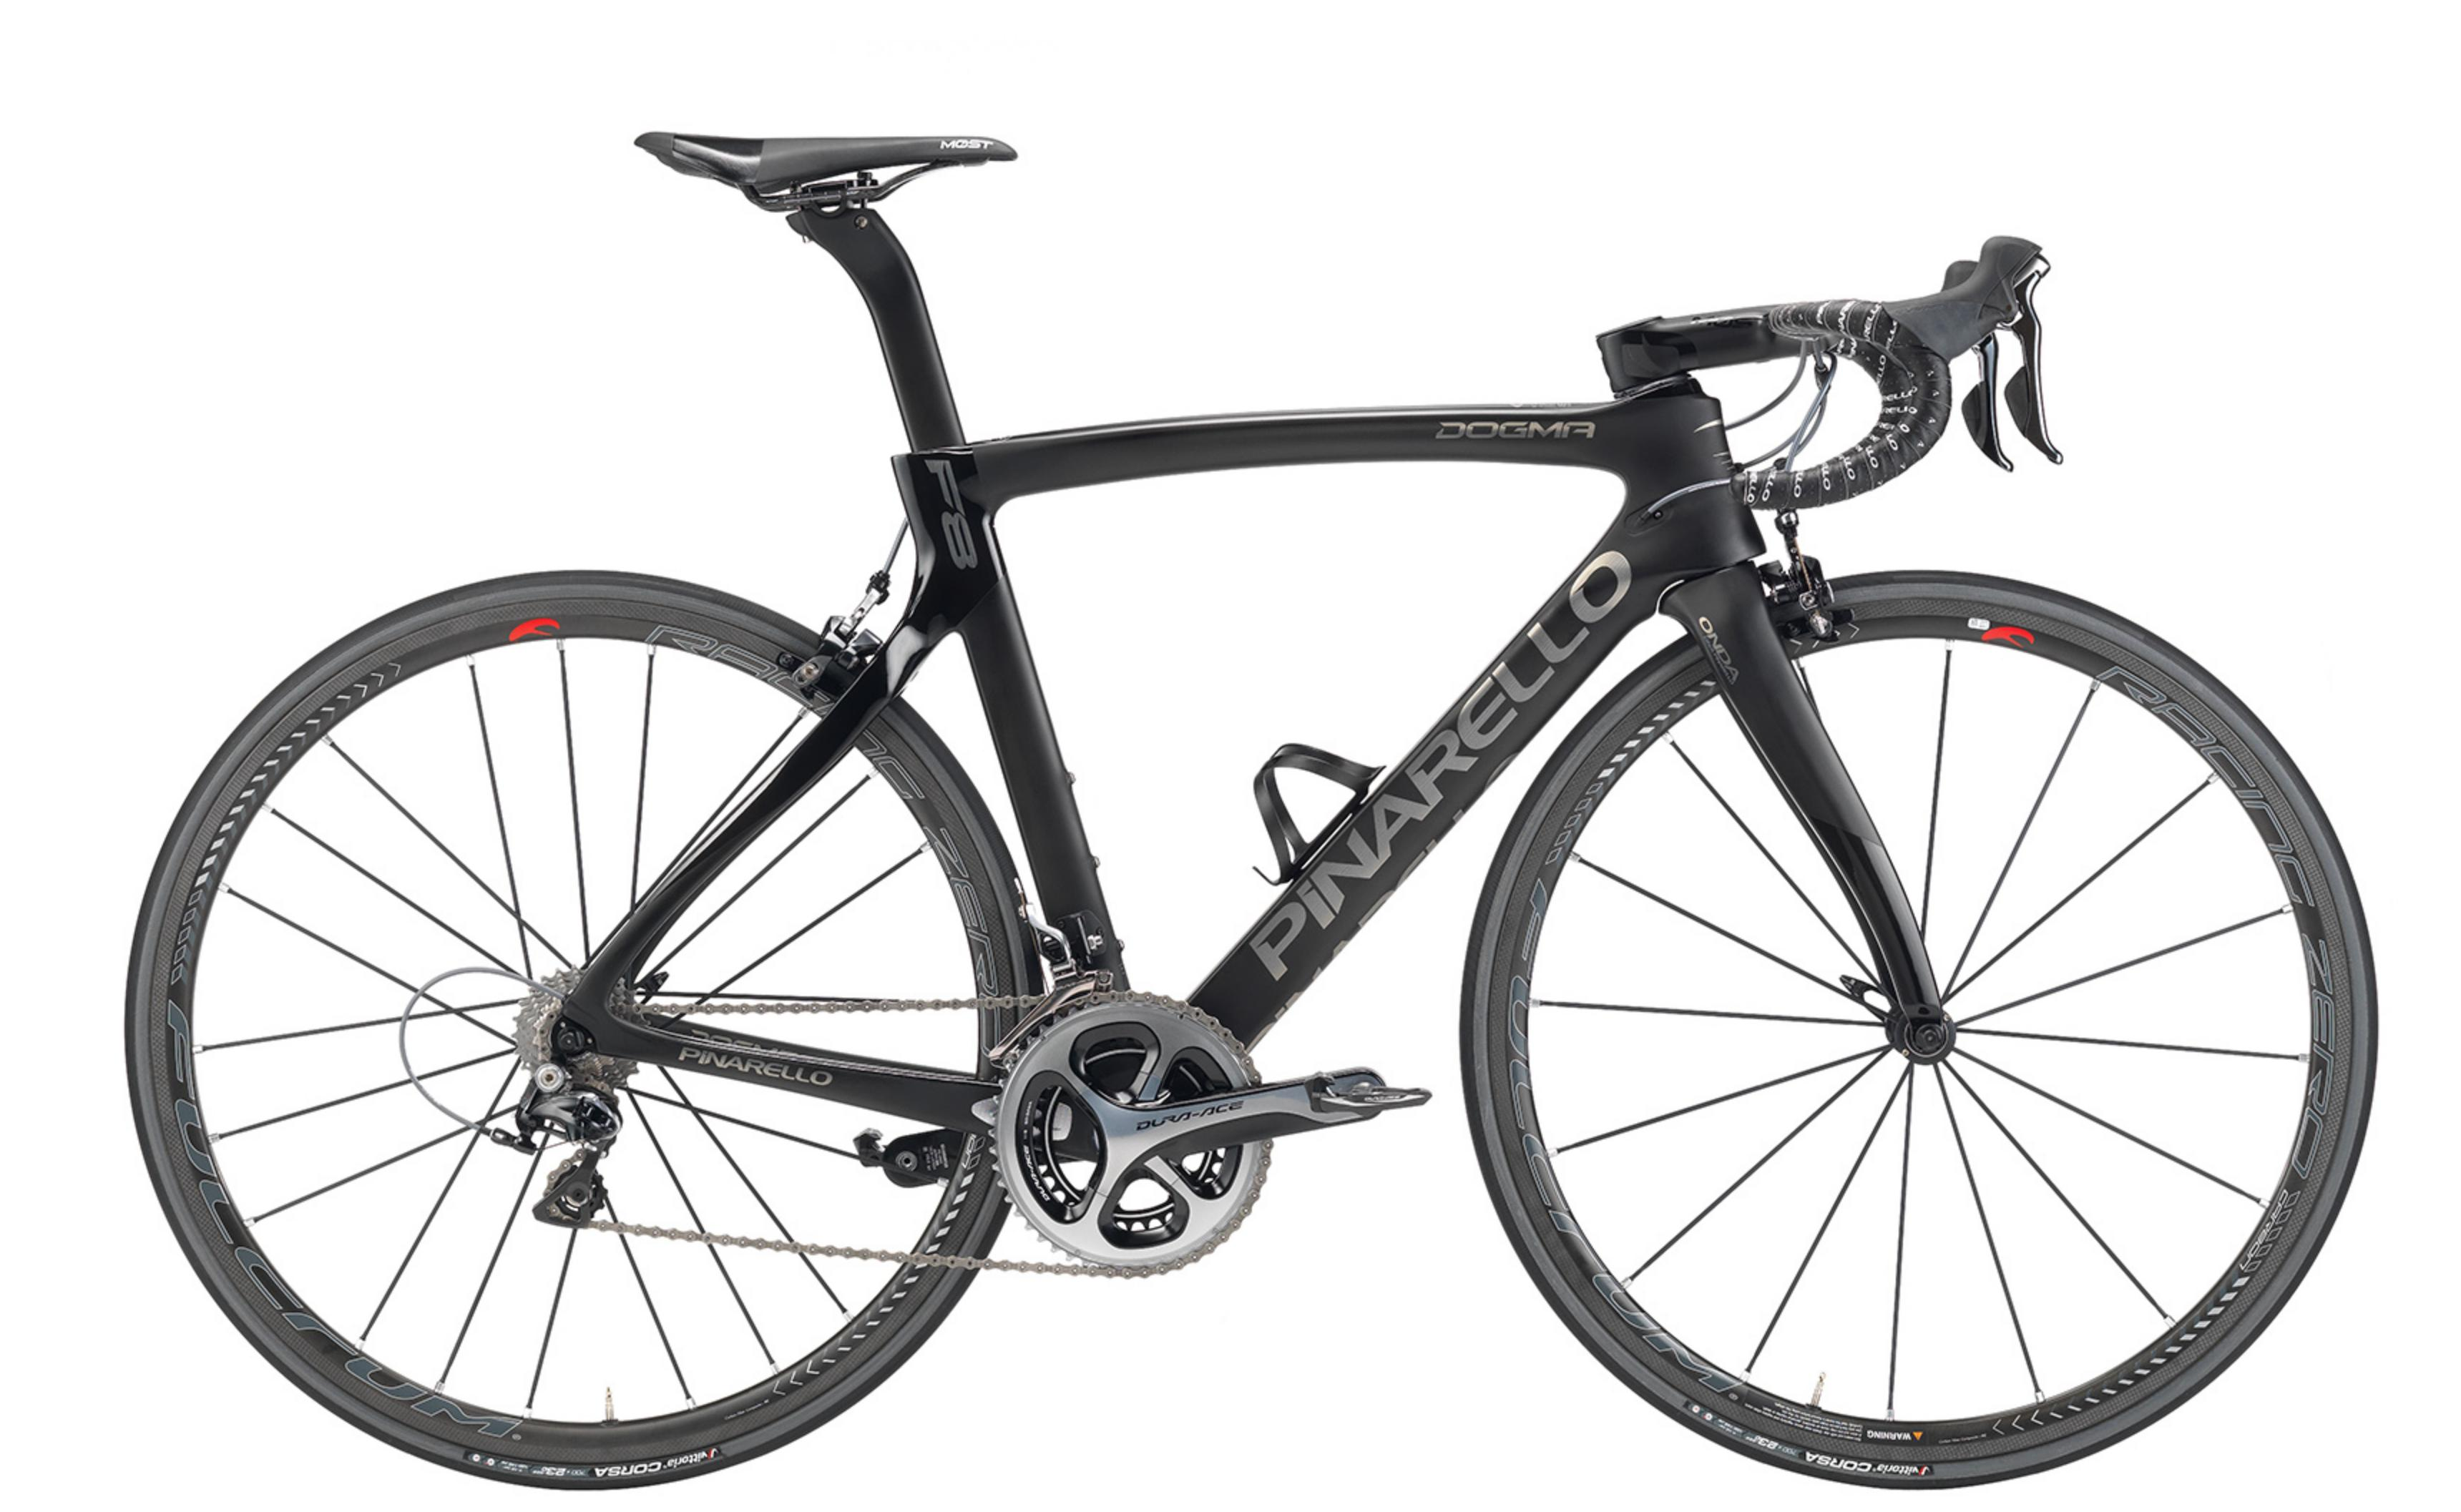 Pinarello Dogma F8 Sram Red E-Tap Edition